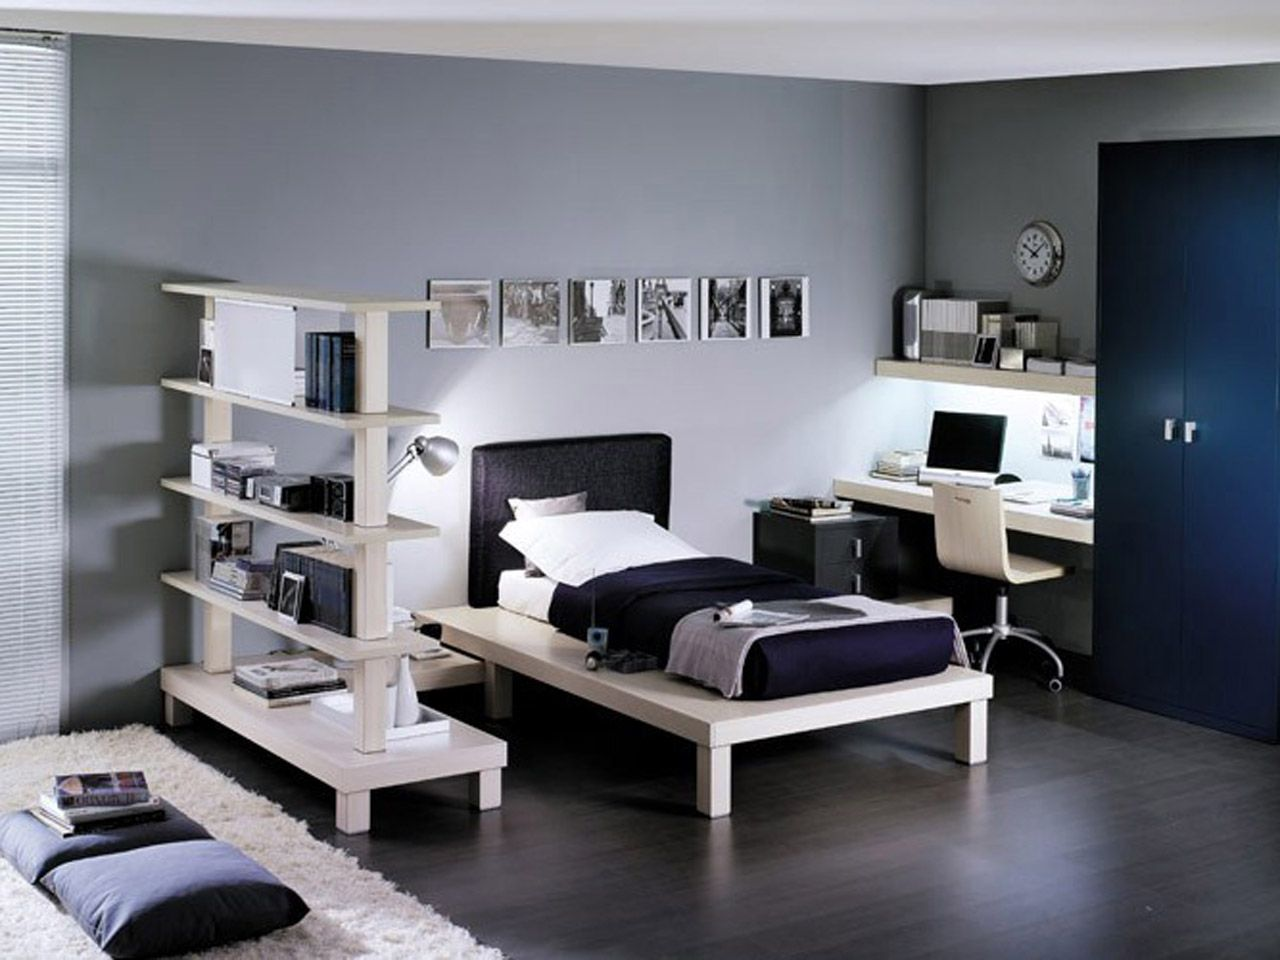 boys room furniture ideas. spa u2013 tiramolla kids bedroom decorating ideas boys room furniture b